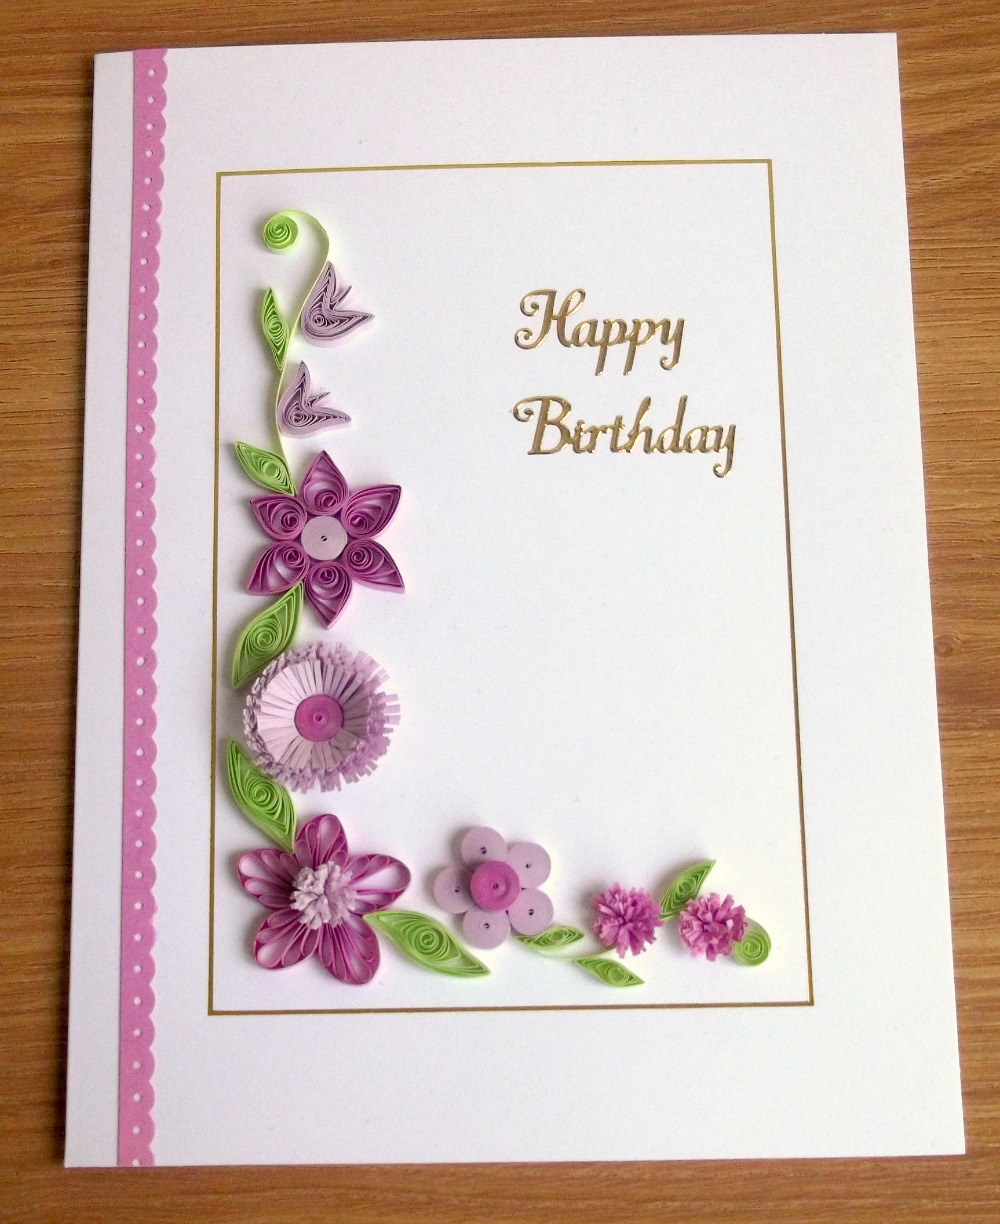 Paper Daisy Cards: New Twist On Old Design